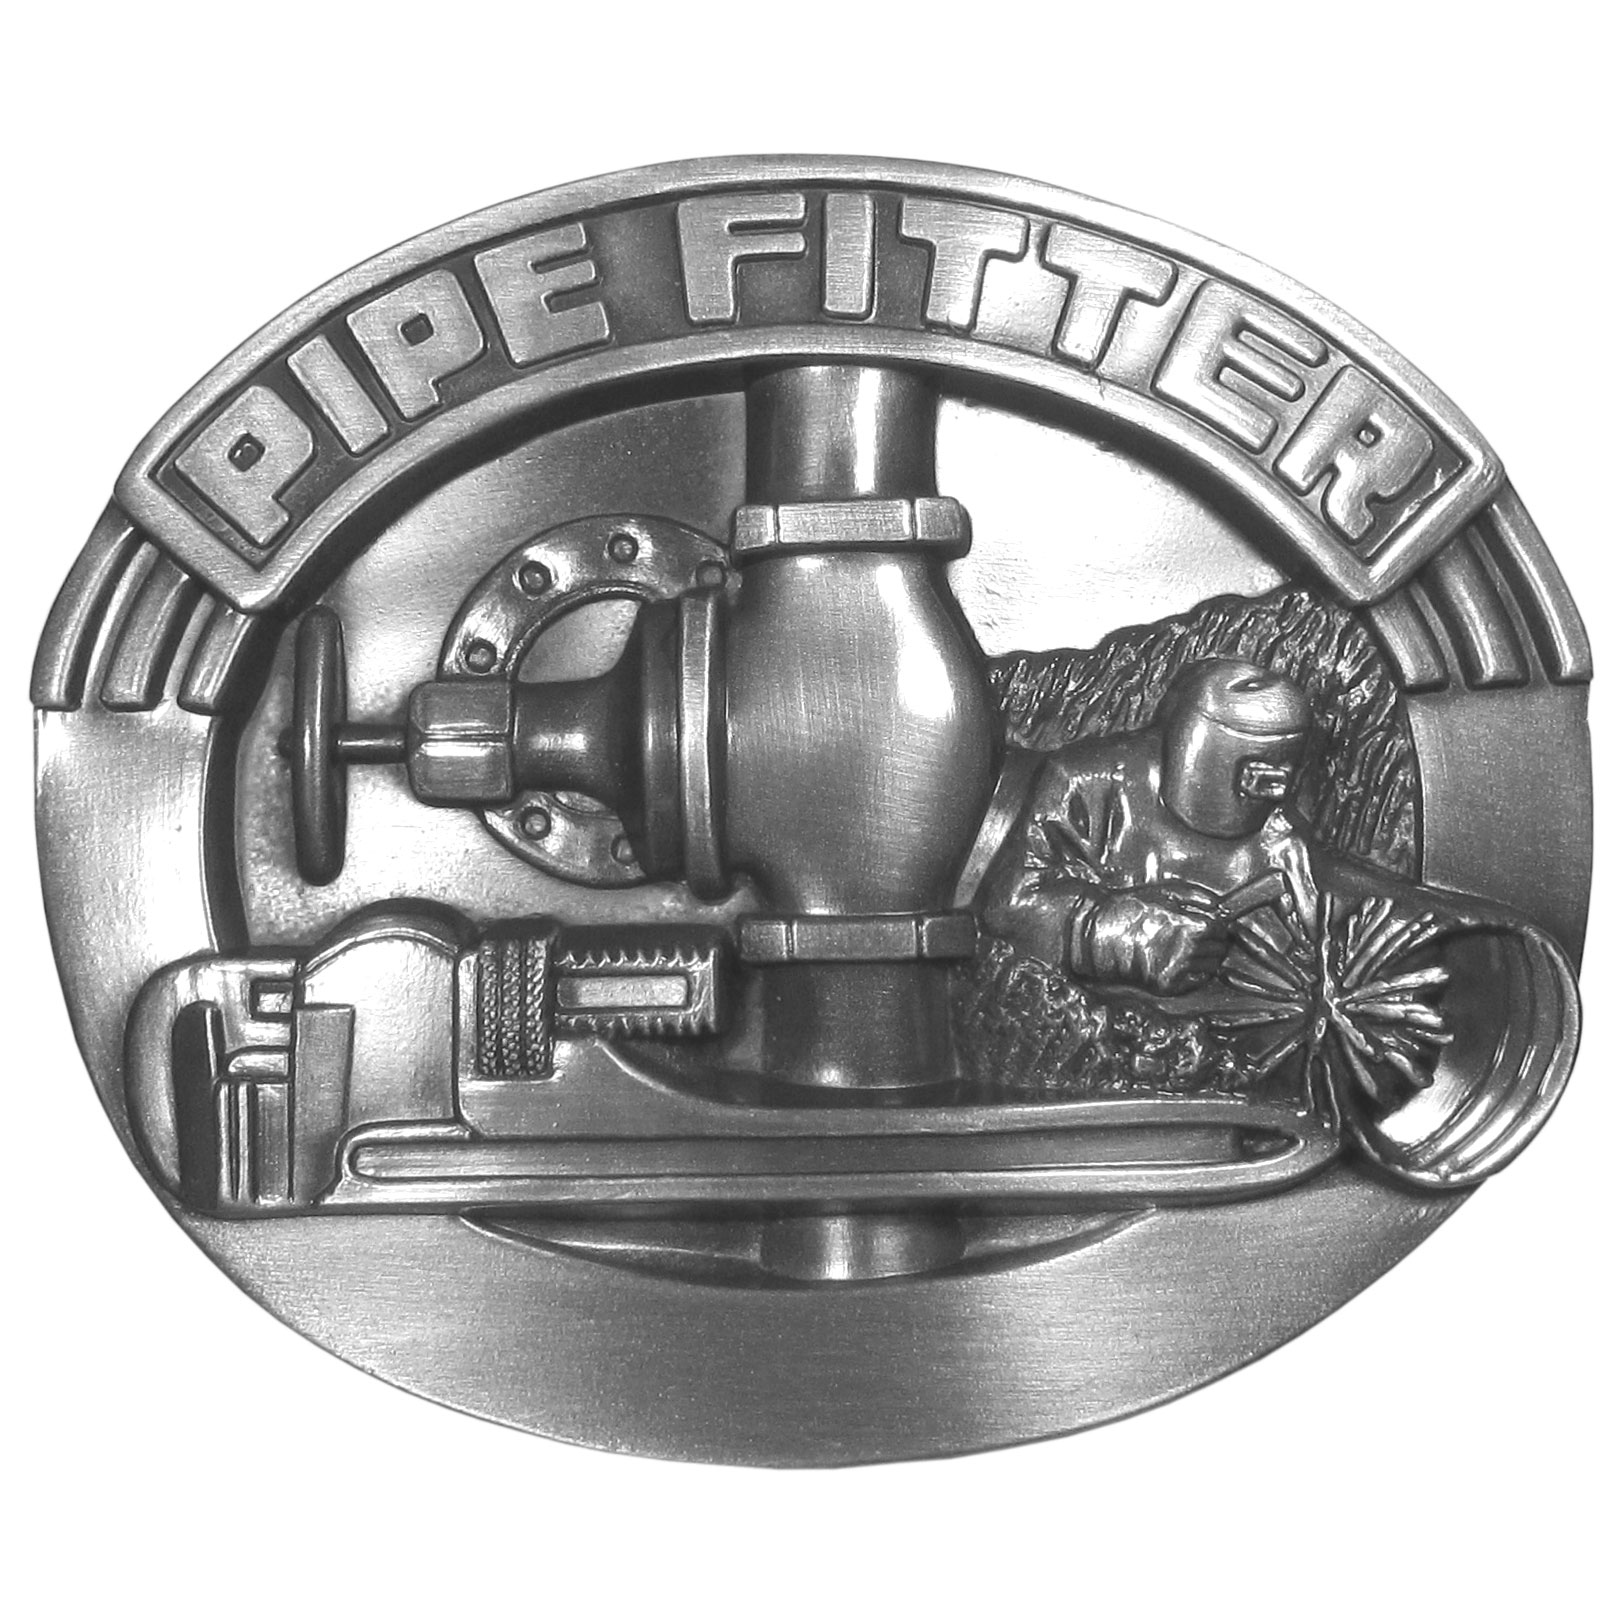 """Pipe Fitter Antiqued Belt Buckle - This buckle is designed for the pipe fitter. It has """"Pipe Fitter"""" on a bold banner across the top. Below that is a pipe fitter welding a pipe, a pipe wrench and pipes. This exquistely carved buckle is made of fully cast metal with a standard bale that fits up to 2"""" belts."""